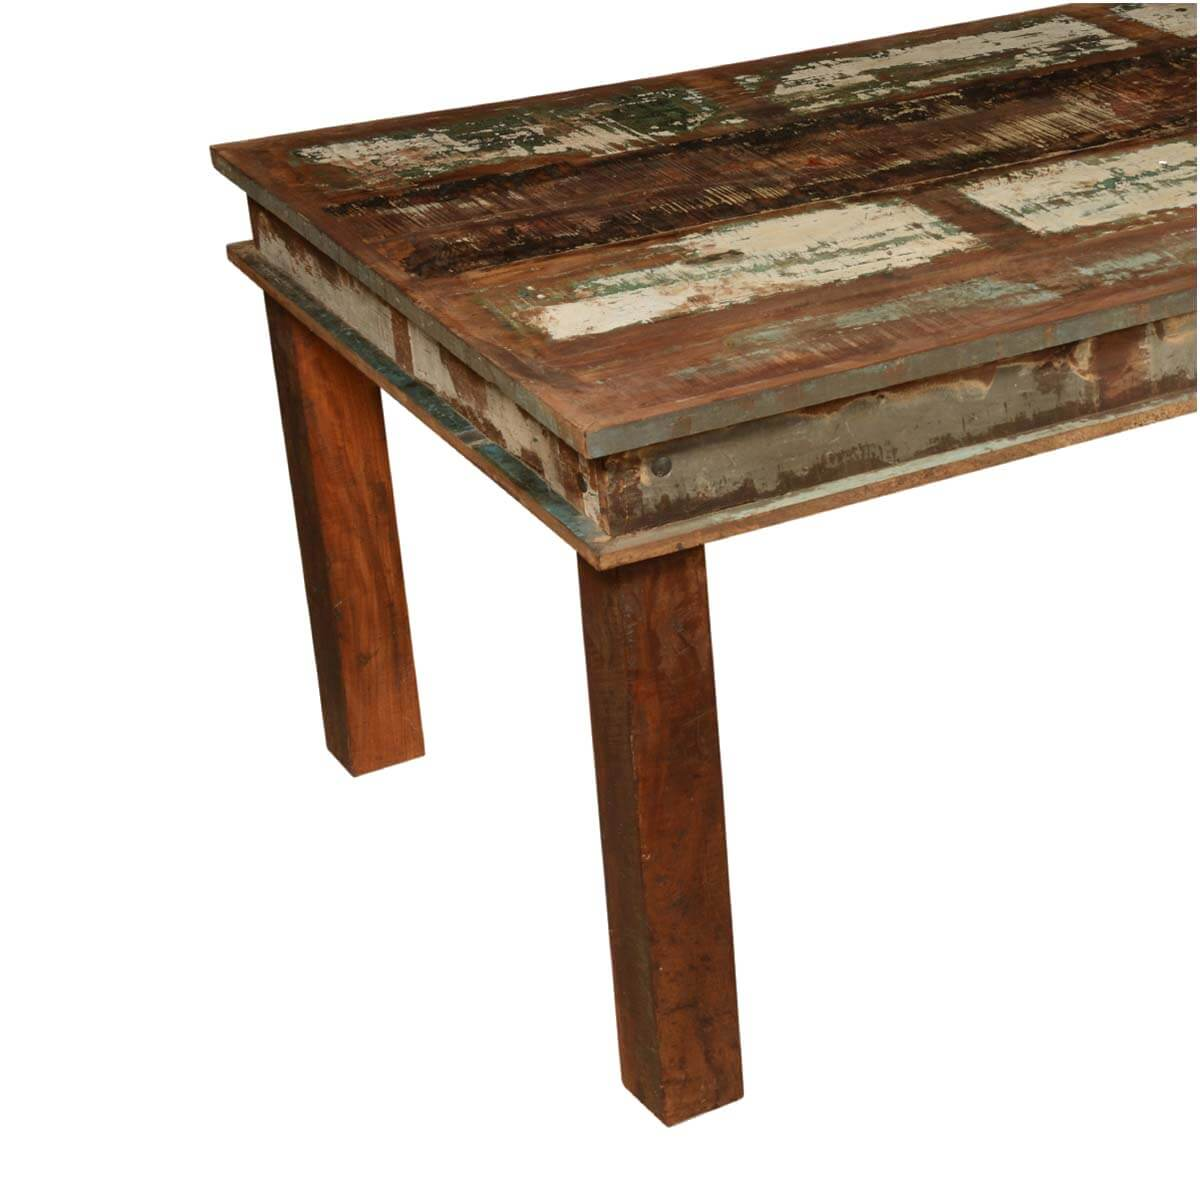 Discount furniture free shipping 30 off pbteen coupon for Buy reclaimed wood online